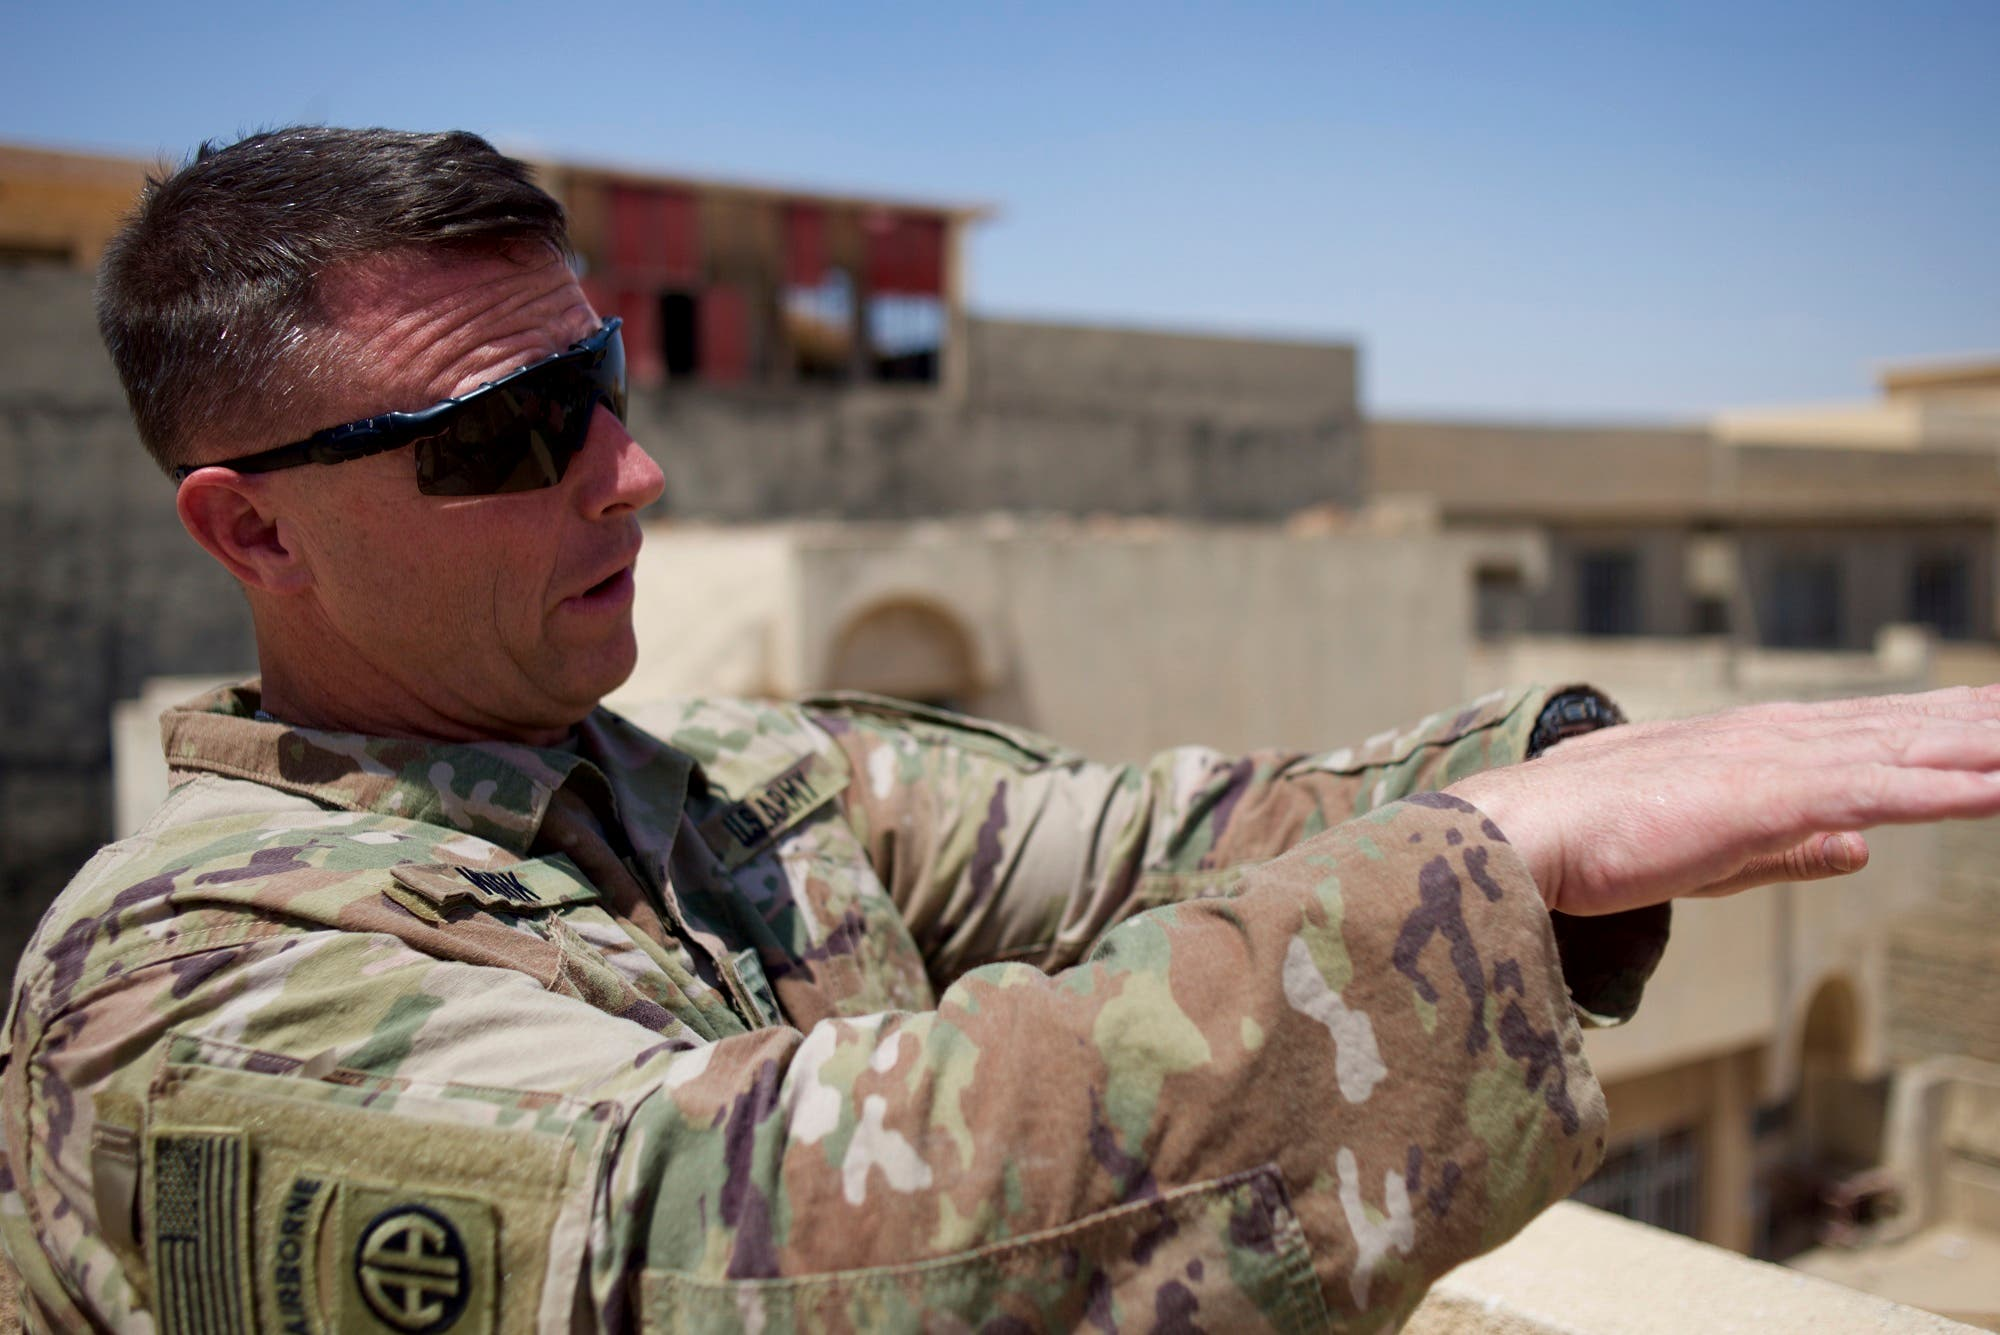 Colonel Pat Work of the U.S. Army's 82nd airborne division looks at the skyline, as he meets with Iraqi commanders near the front lines, on the rooftop of a house in Mosul, Friday, June 30, 2017. (AP)